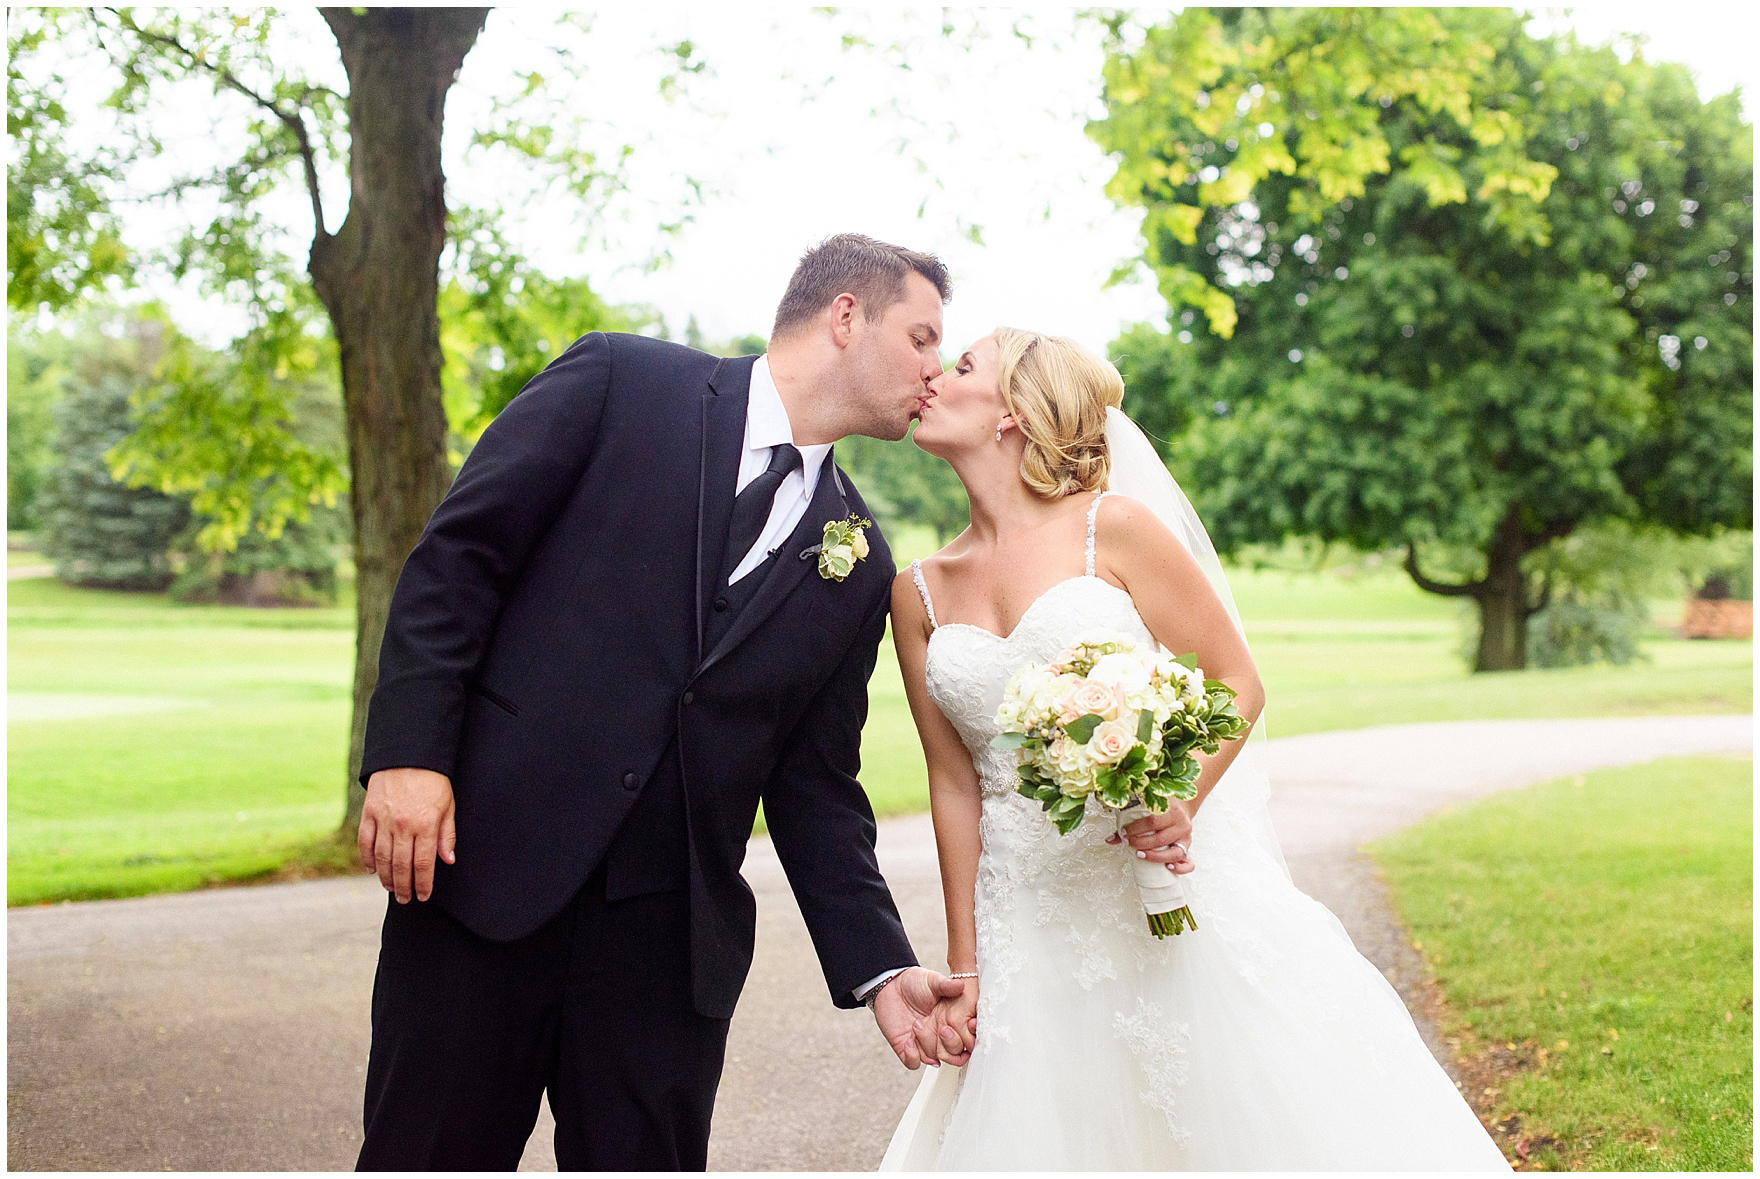 A bride and groom kiss during their Itasca Country Club Illinois wedding.